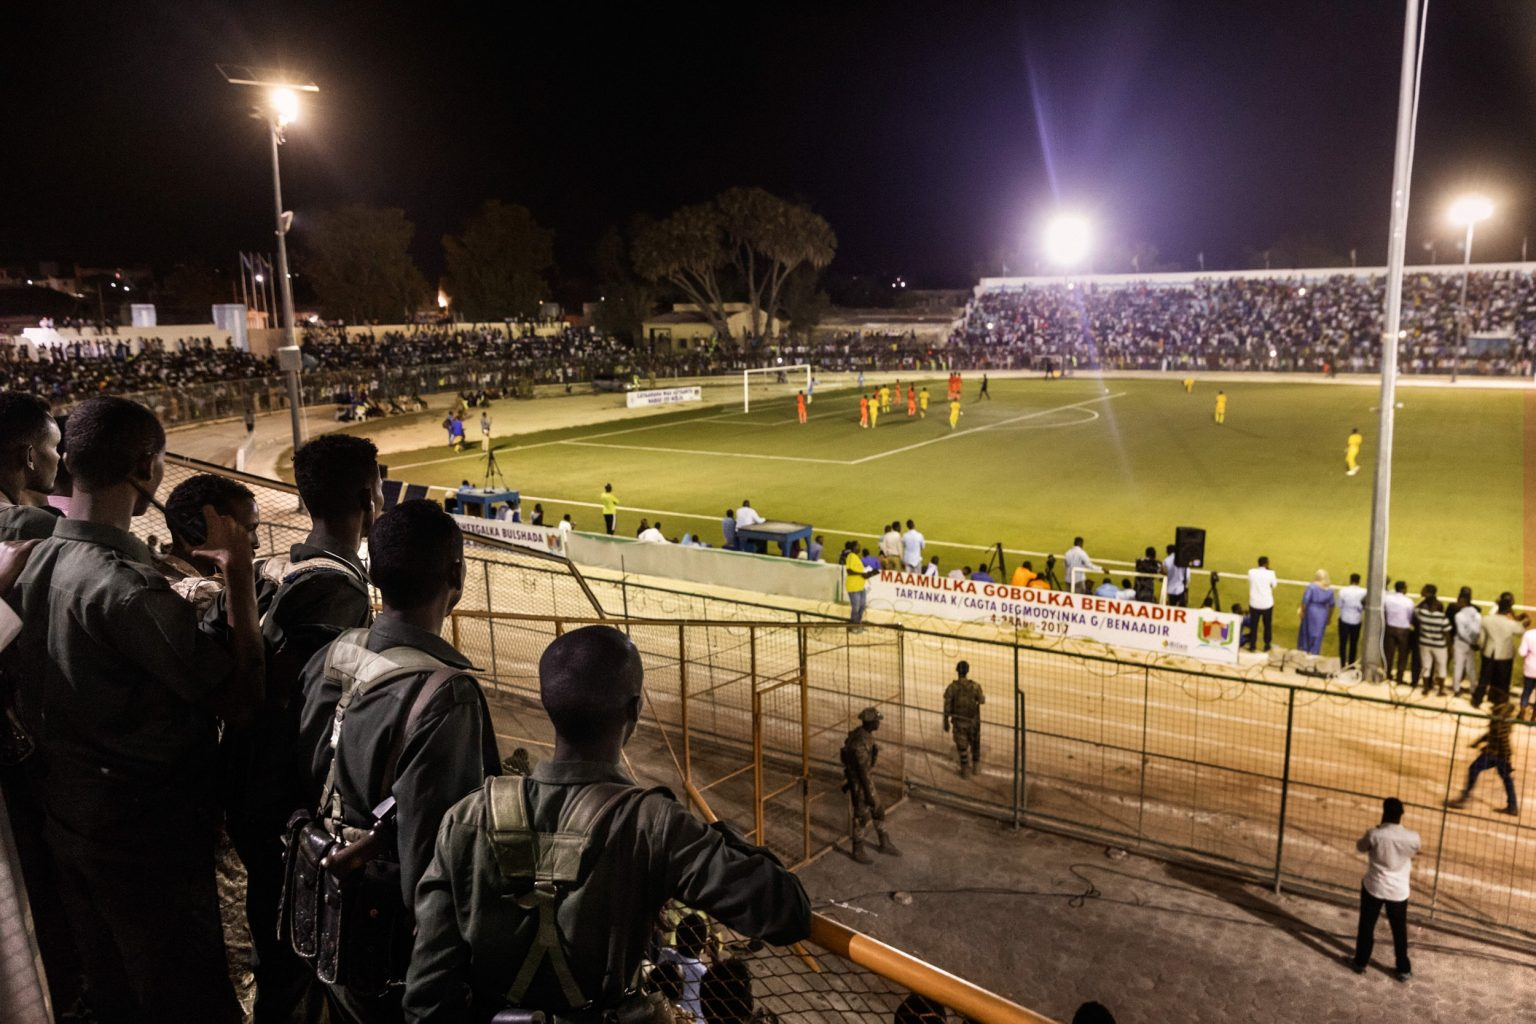 frica, Somalia, Benaadir region. Mogadishu. The soccer match between Hodan and Waberi districts, in the first night-time match since chaos descended on the Somali capital nearly three decades ago. The tournament for 16 and 18-year-olds at the Konis Stadium, renovated by FIFA, was played under tight security because of the constant threat posed by the Shabaab Islamist group. The stadium has been and remains a military base for African Union peacekeepers, who drove Al-Shabab militants out of the city in 2011.